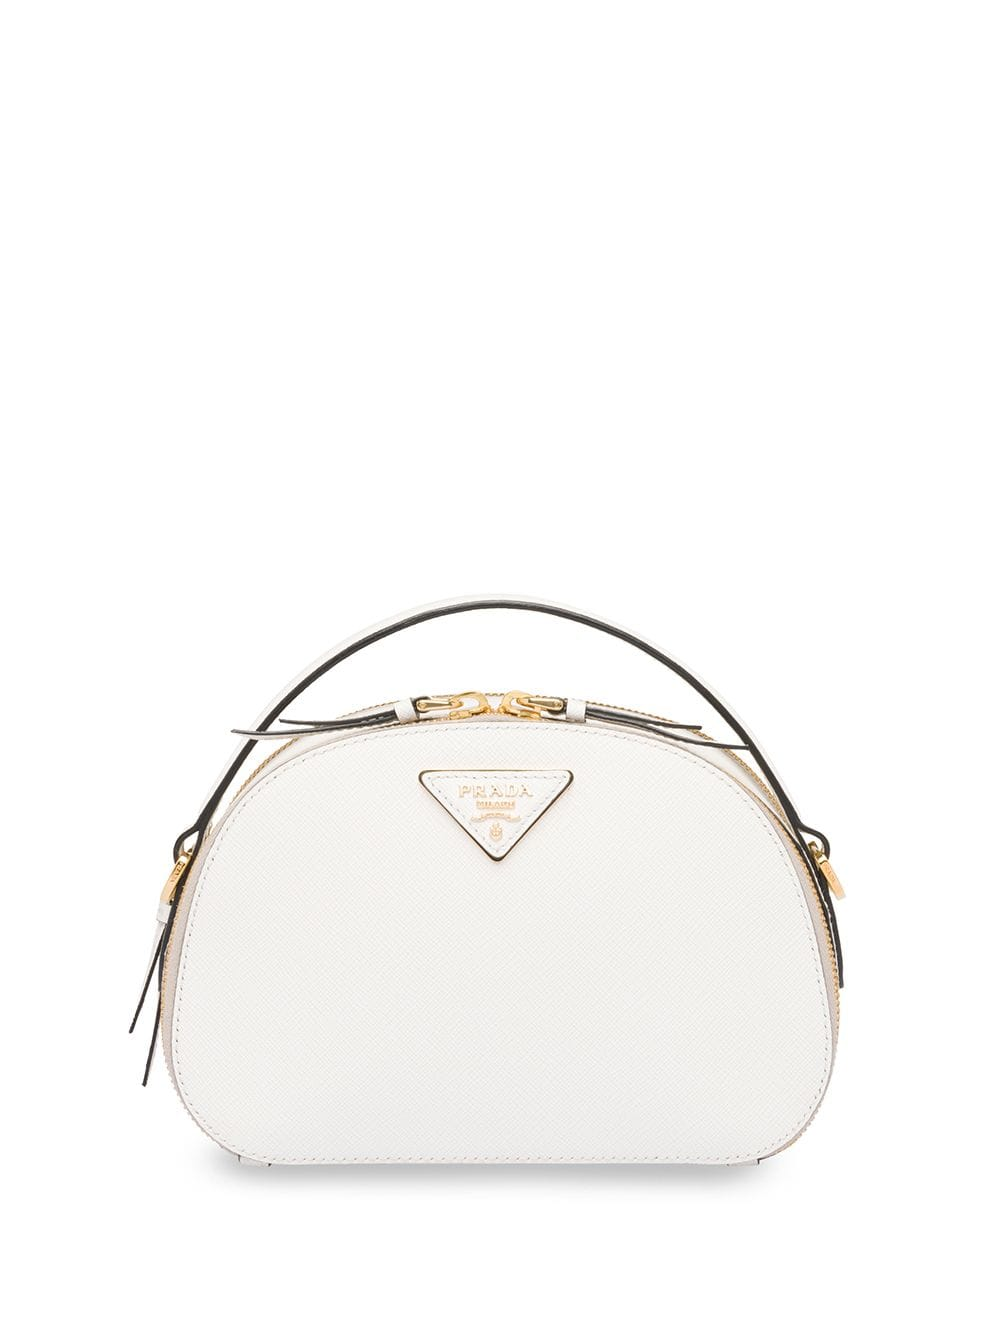 efb1ac4bc Prada Odette Saffiano leather bag - White in 2019 | Products ...